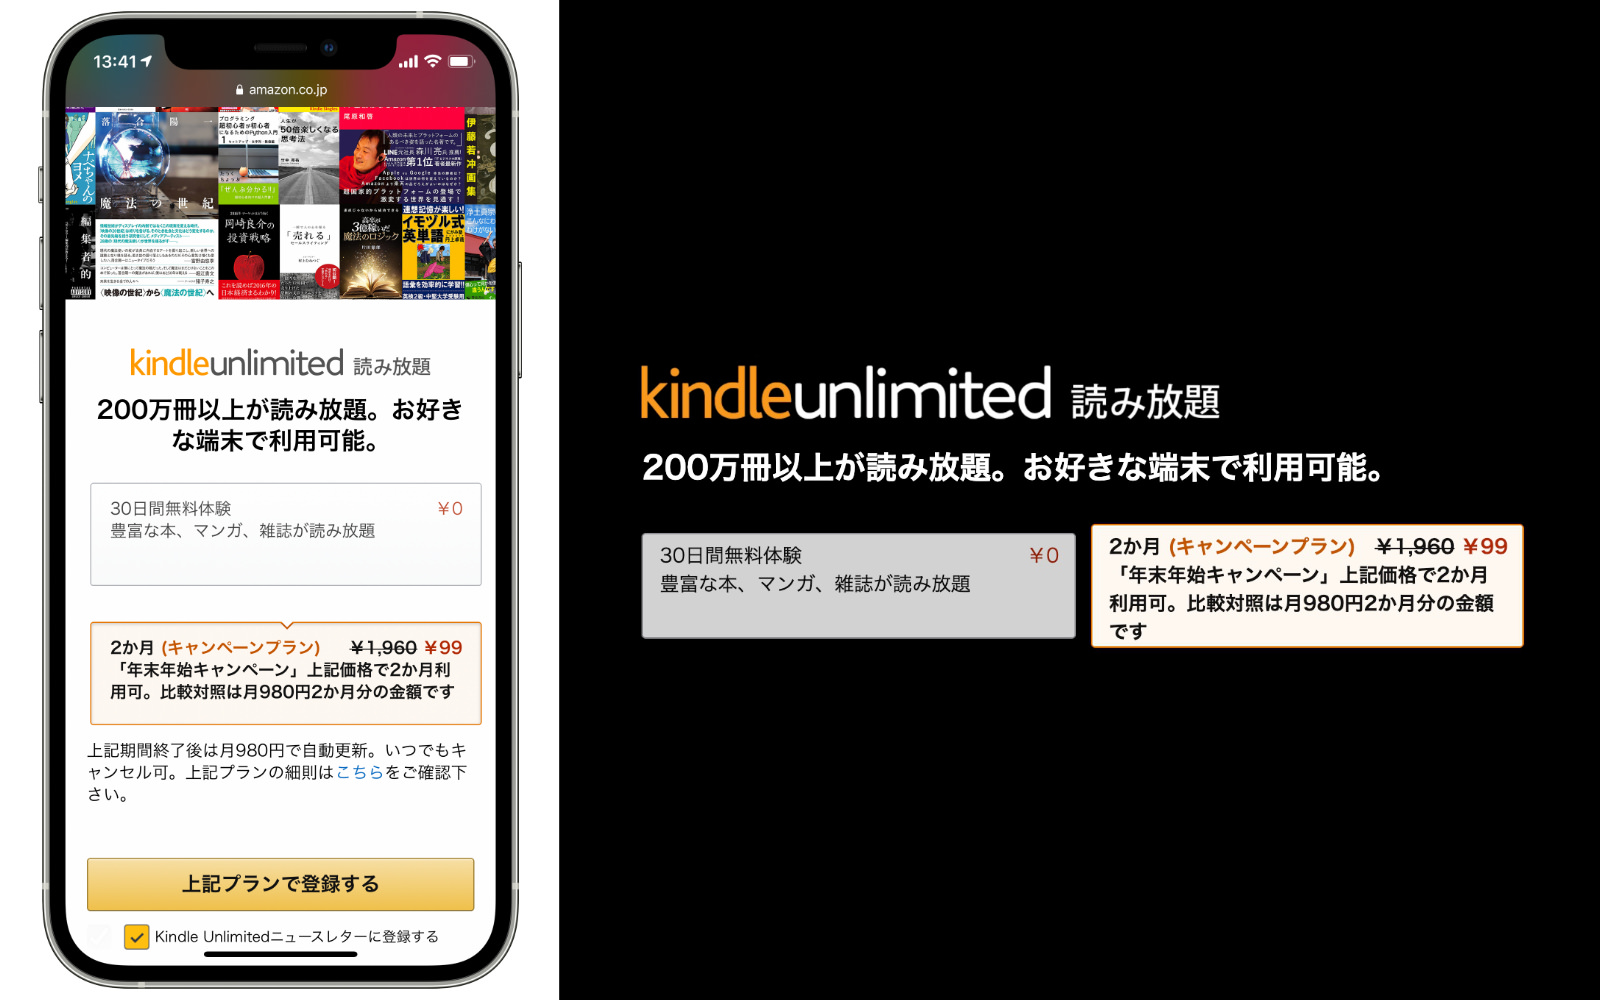 Kindle Unlimited Campagin page 202012